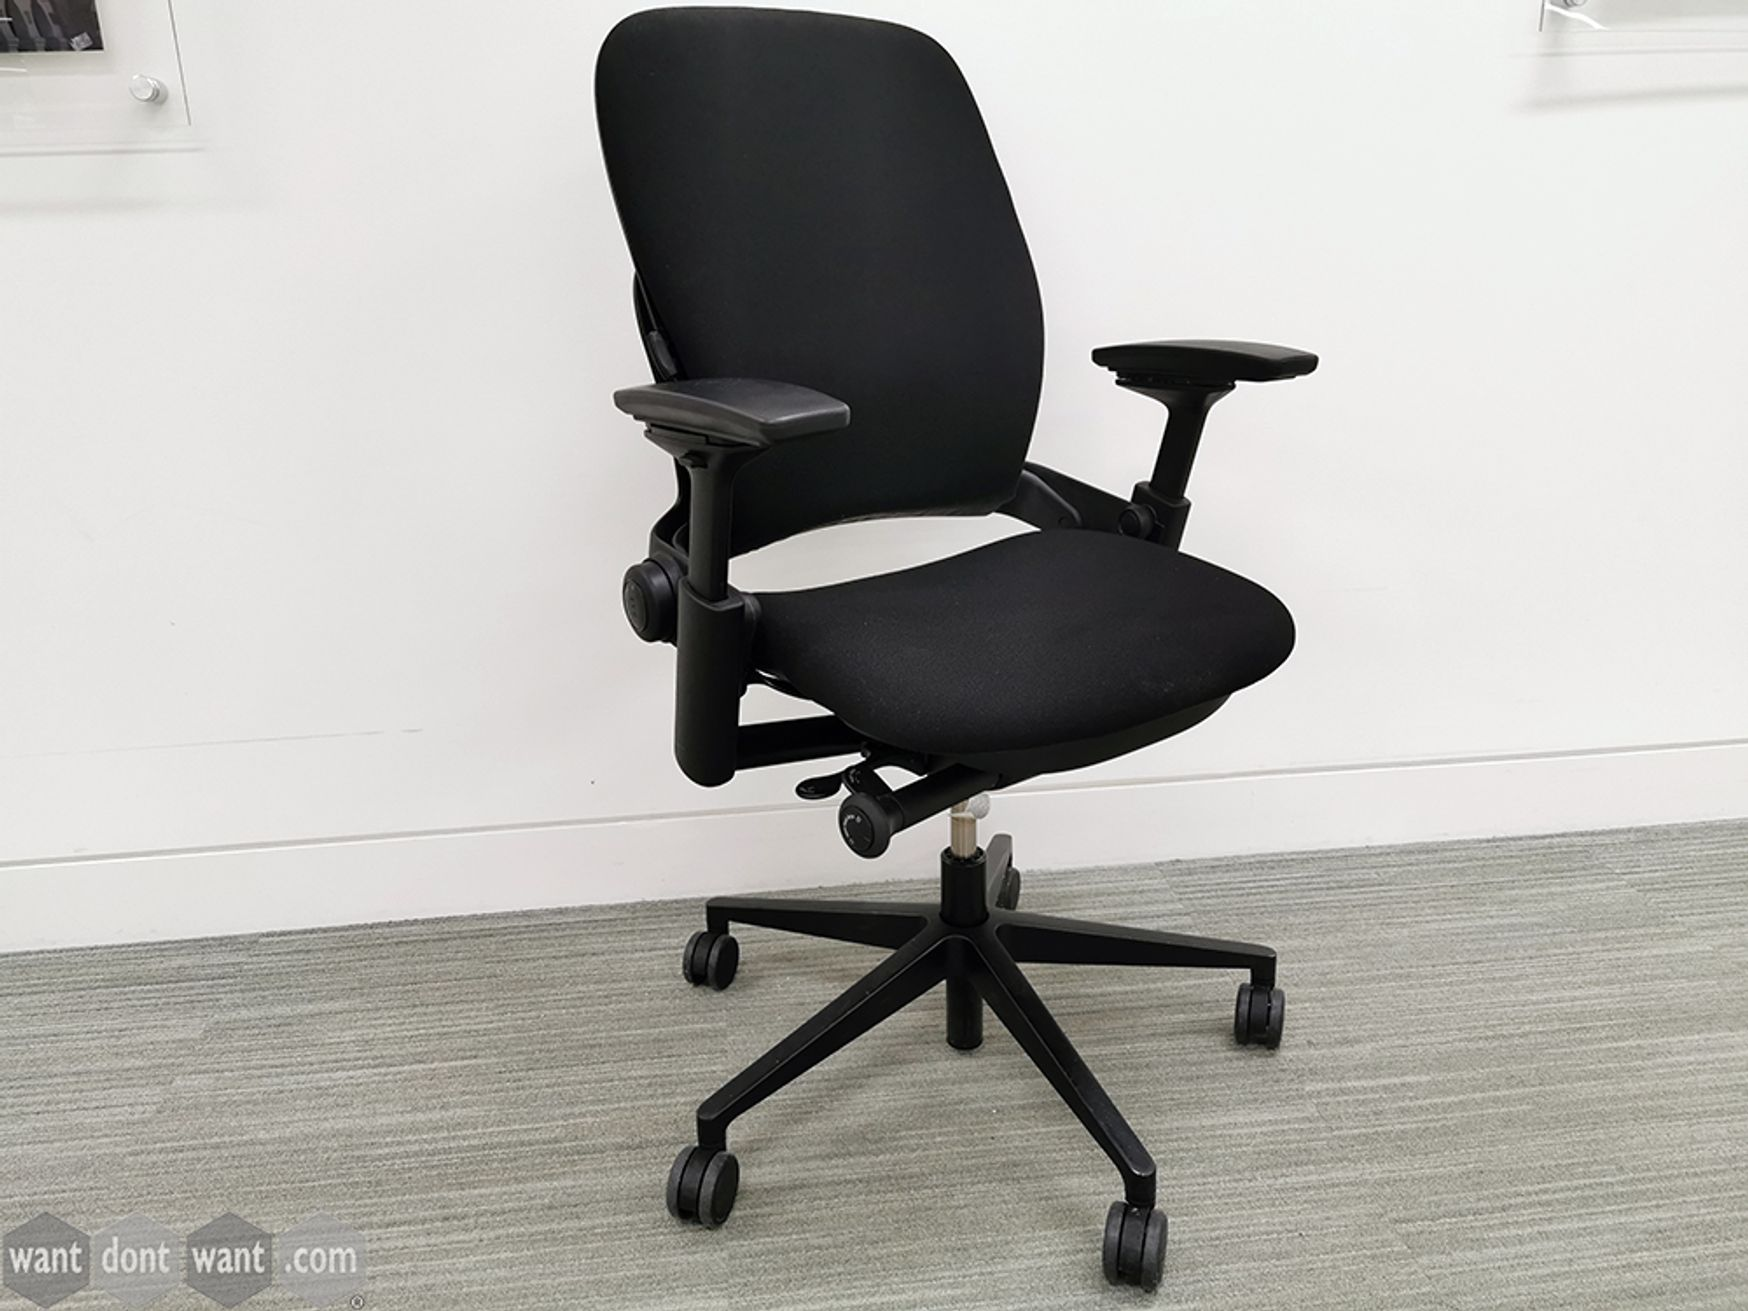 Used Steelcase Leap V2 Task Chair Upholstered in Black Fabric